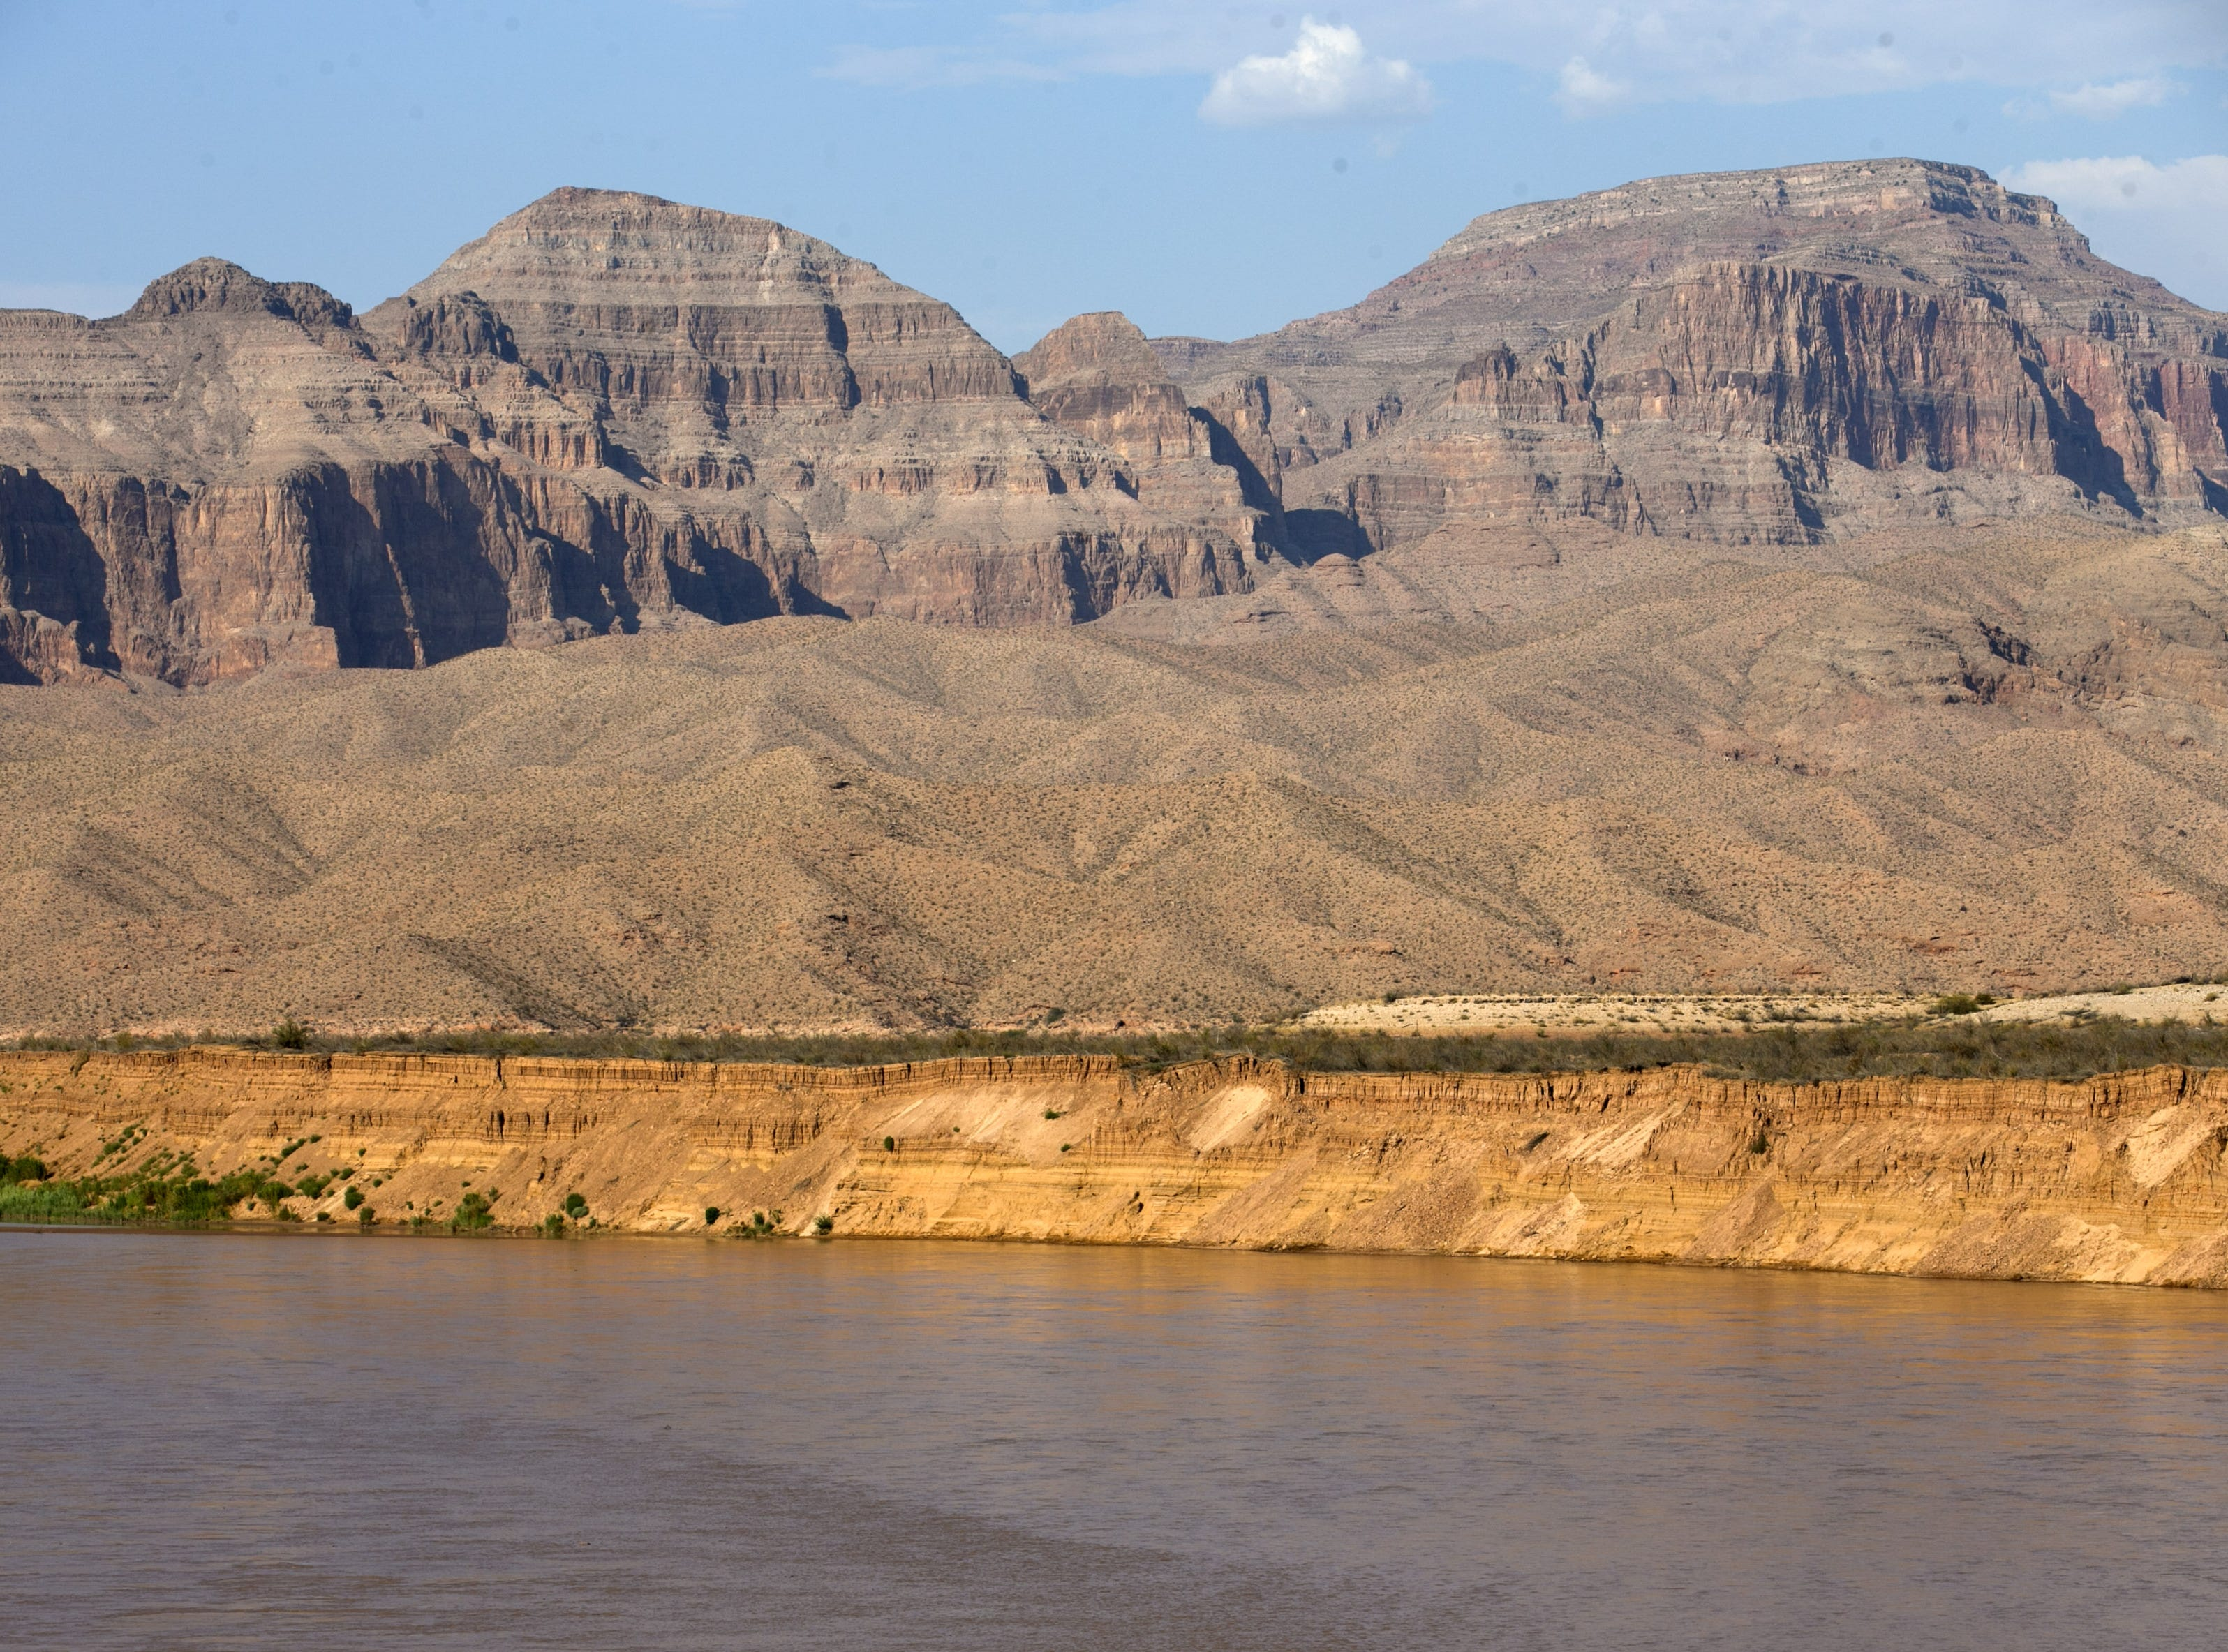 Silt banks tower more than 50 feet above the banks of the Colorado River near Pearce Ferry on Aug. 1, 2018. The silt in the banks, which make the end of the Grand Canyon, in Lake Mead National Recreation Area, came down the Colorado River and could not pass Hoover Dam. The banks were once underwater but now line the river with the lake at near-record-low levels.